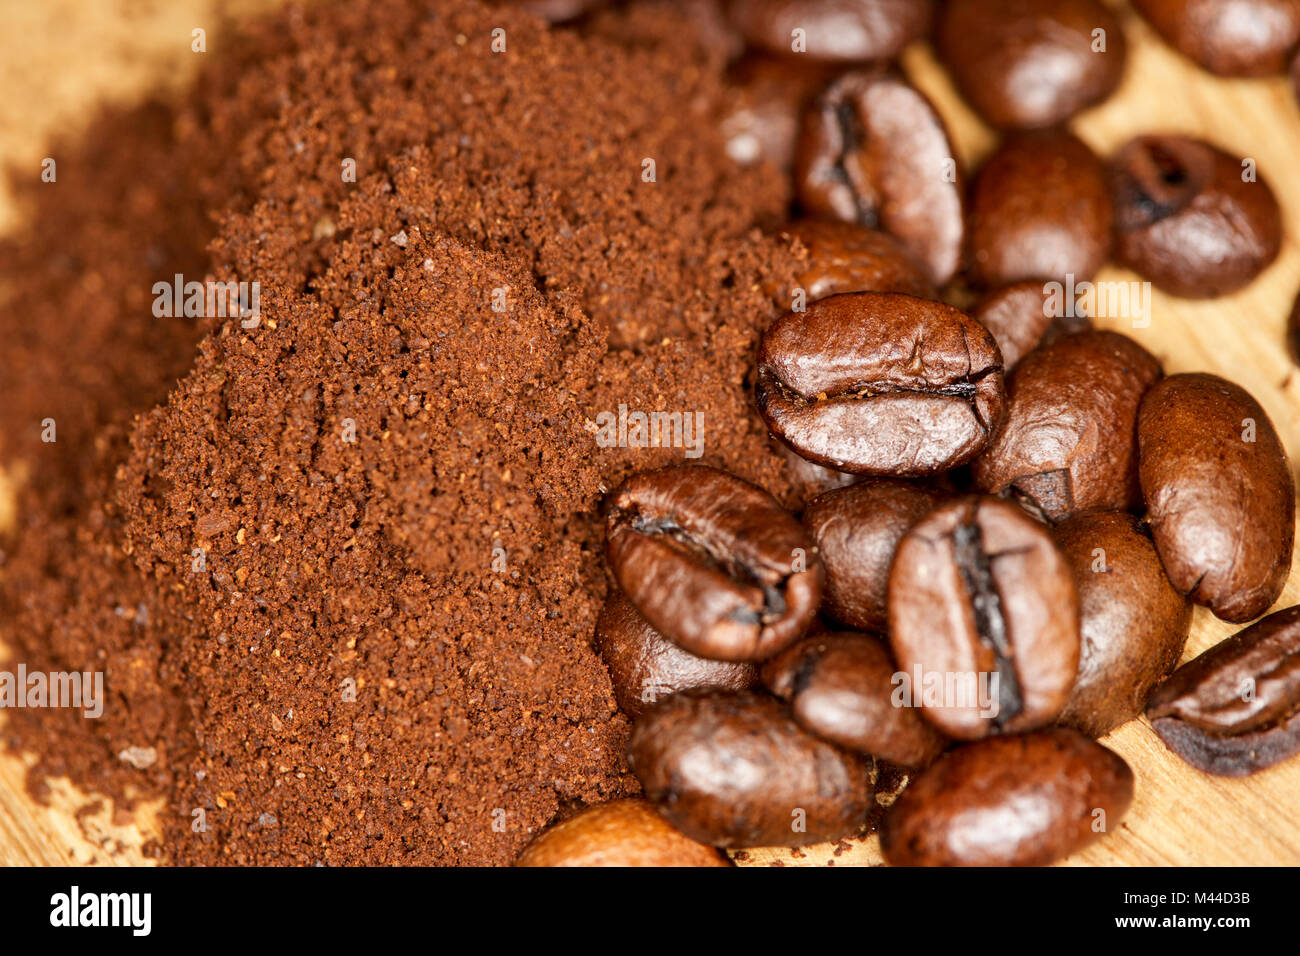 coarse grind freshly ground coffee with mix of arabica and robusta coffee beans - Stock Image